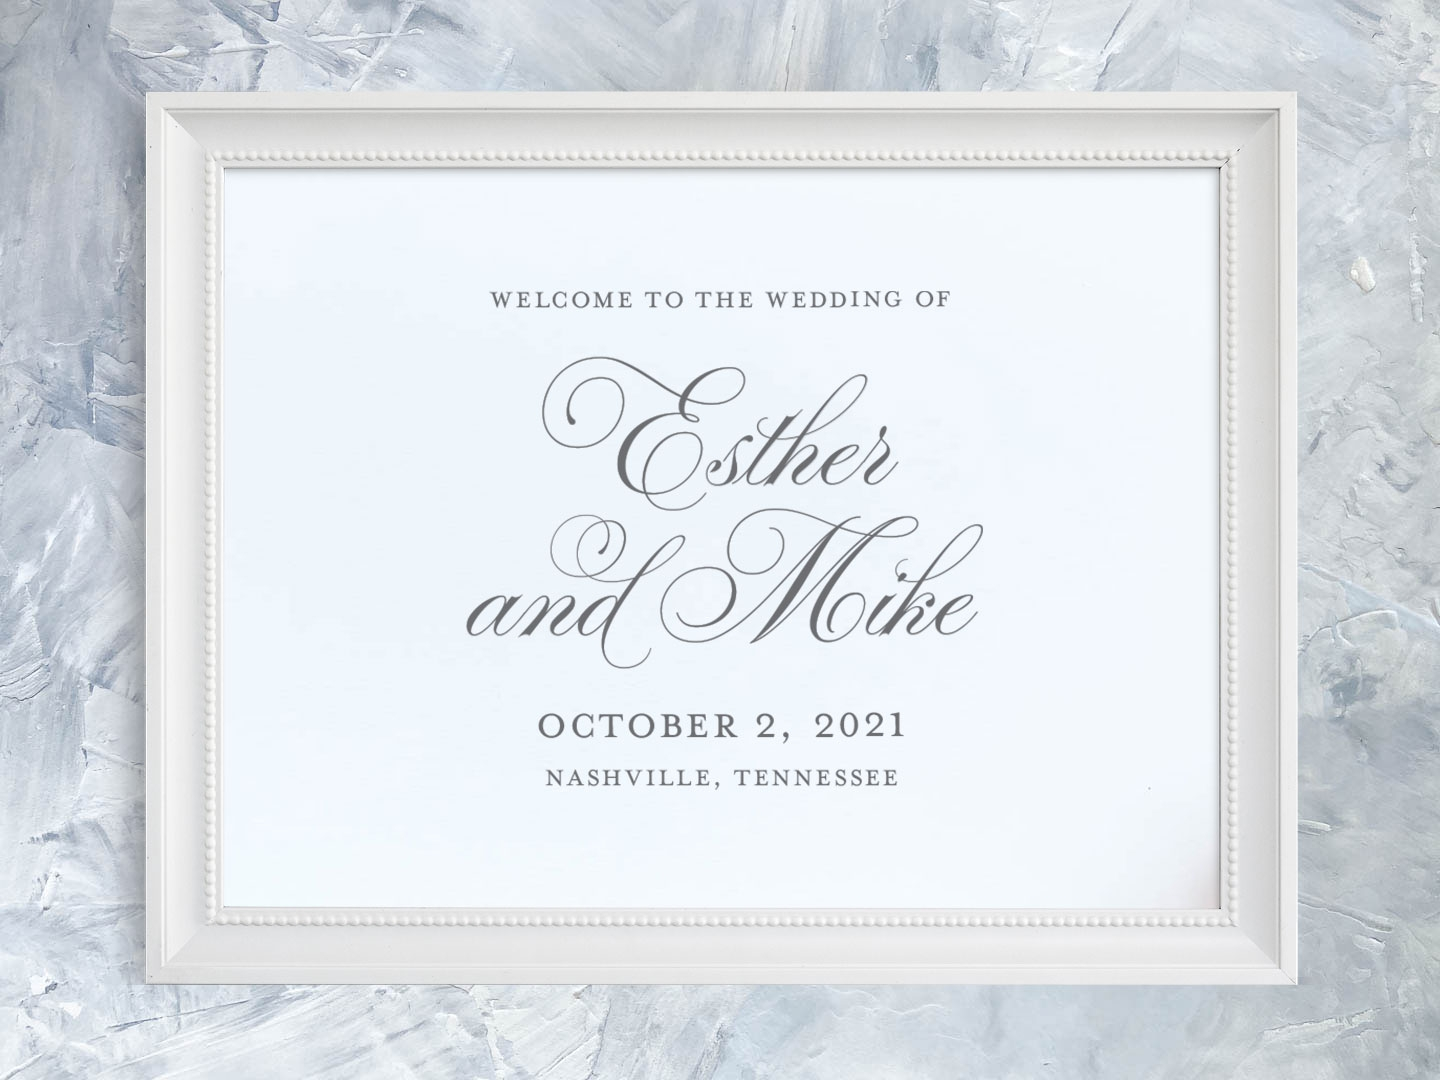 Wedding welcome sign with fancy flourished script names.